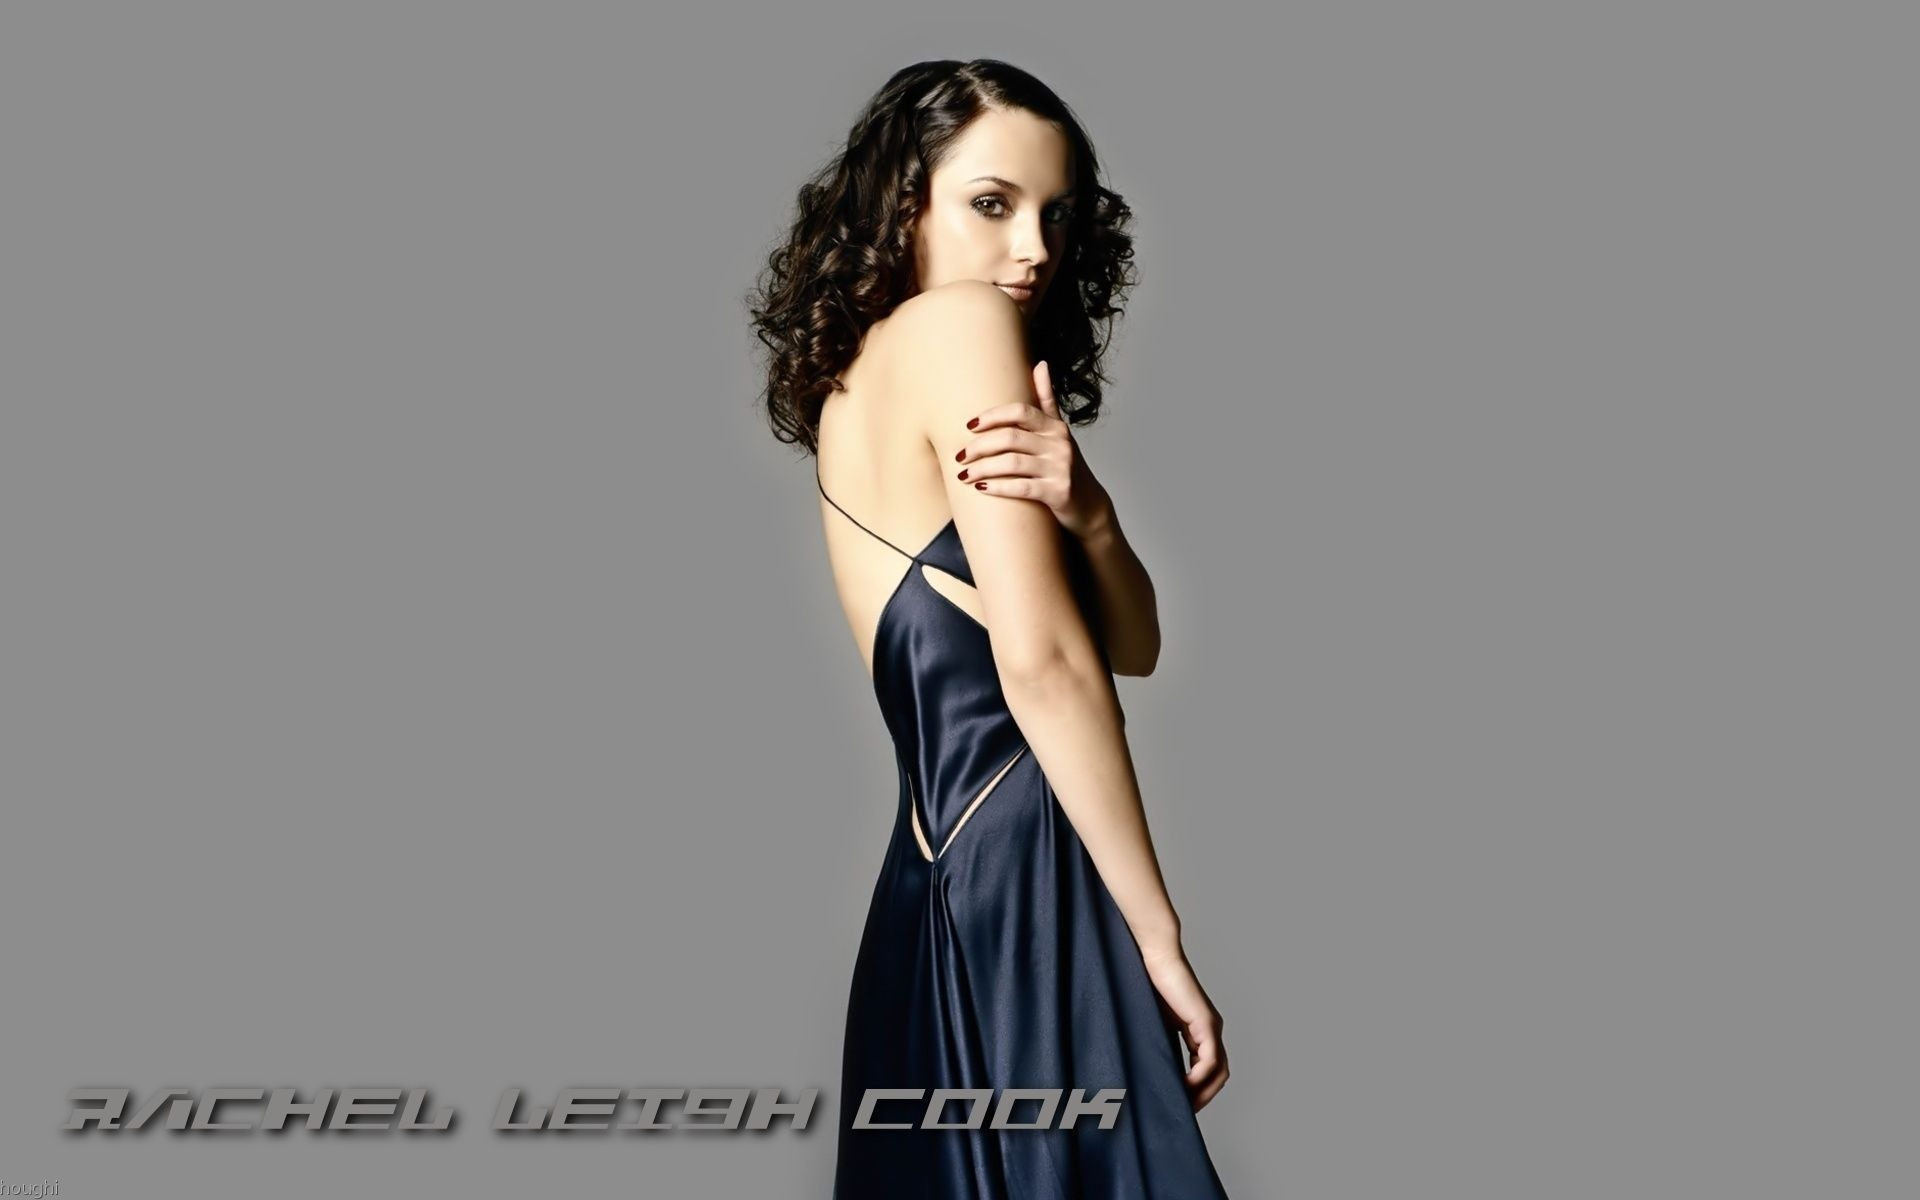 Rachael Leigh Cook #013 - 1920x1200 Wallpapers Pictures Photos Images